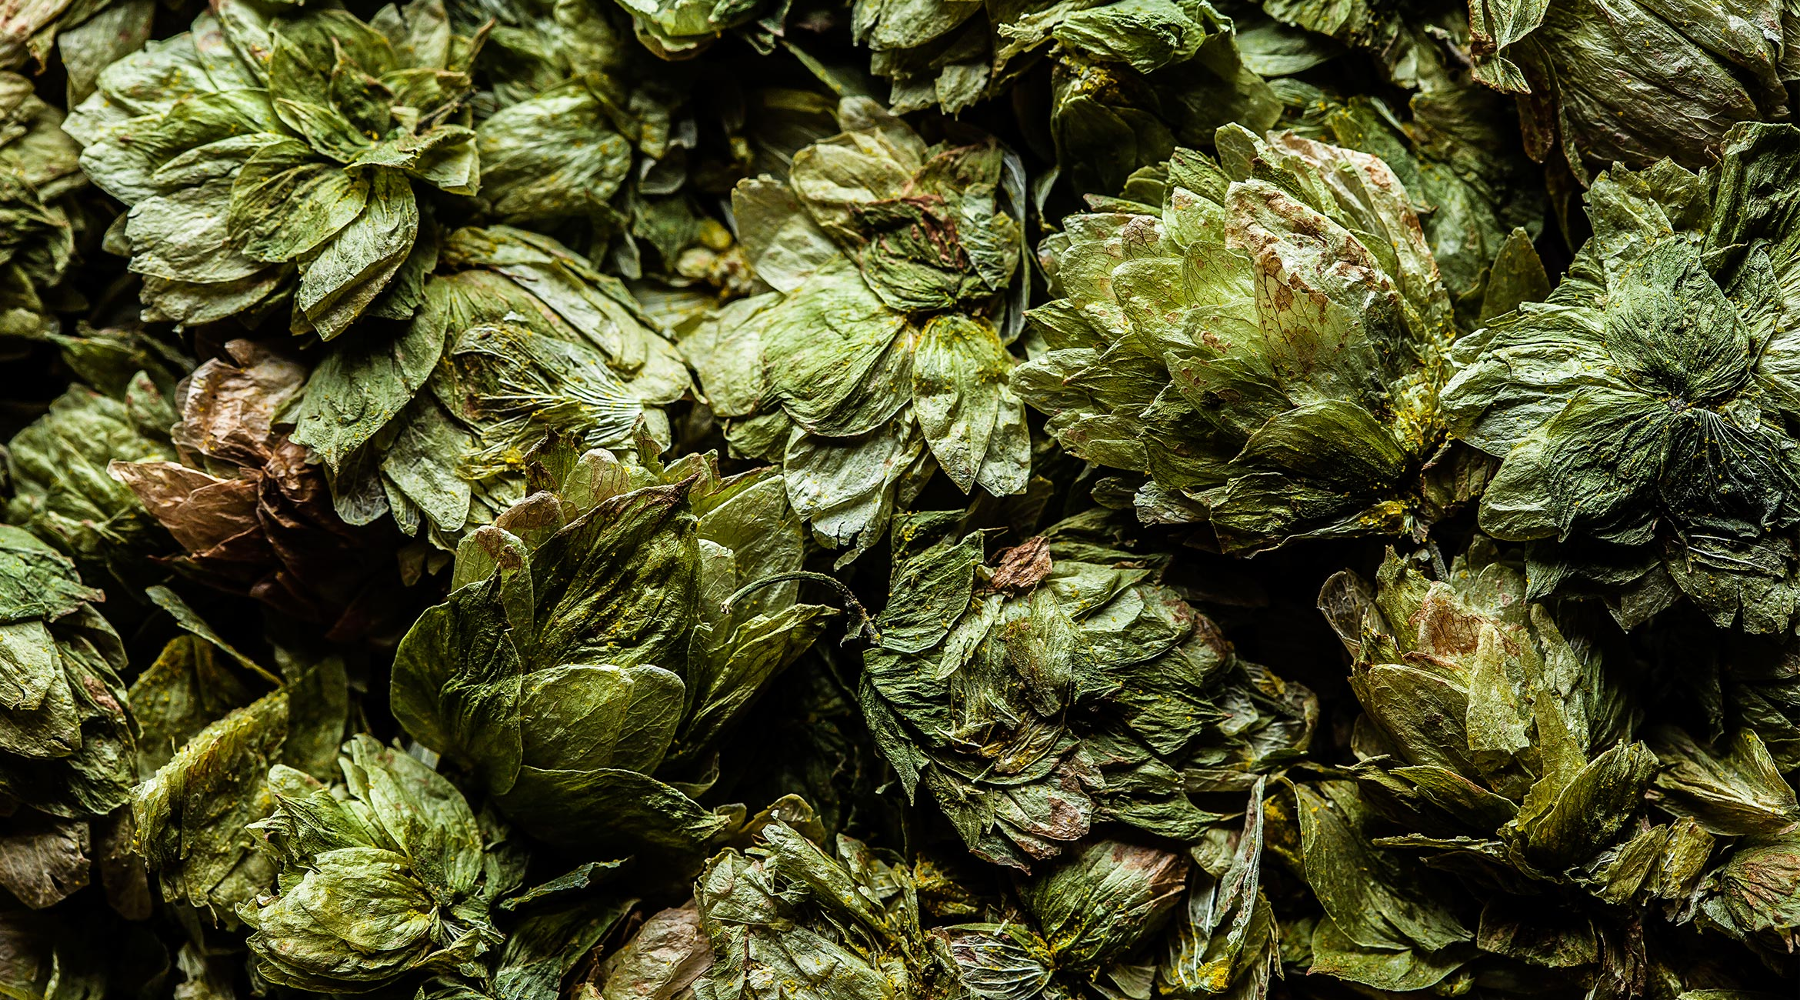 Dried Mosaic Hop Cones